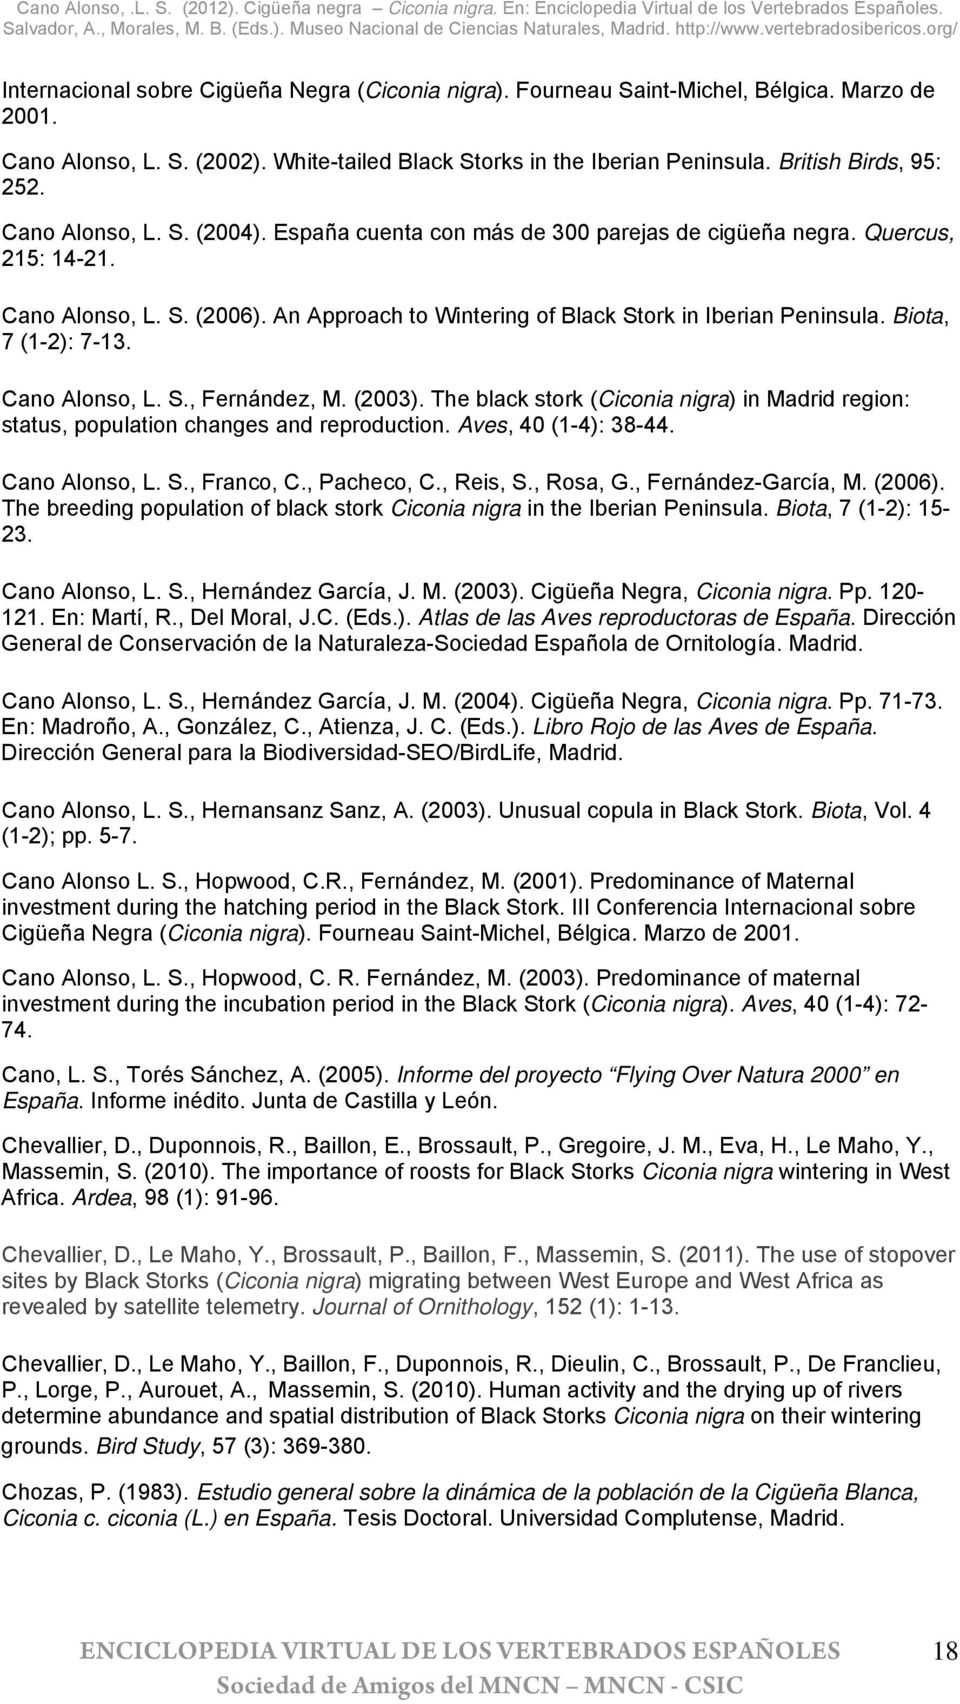 Biota, 7 (1-2): 7-13. Cano Alonso, L. S., Fernández, M. (2003). The black stork (Ciconia nigra) in Madrid region: status, population changes and reproduction. Aves, 40 (1-4): 38-44. Cano Alonso, L. S., Franco, C.